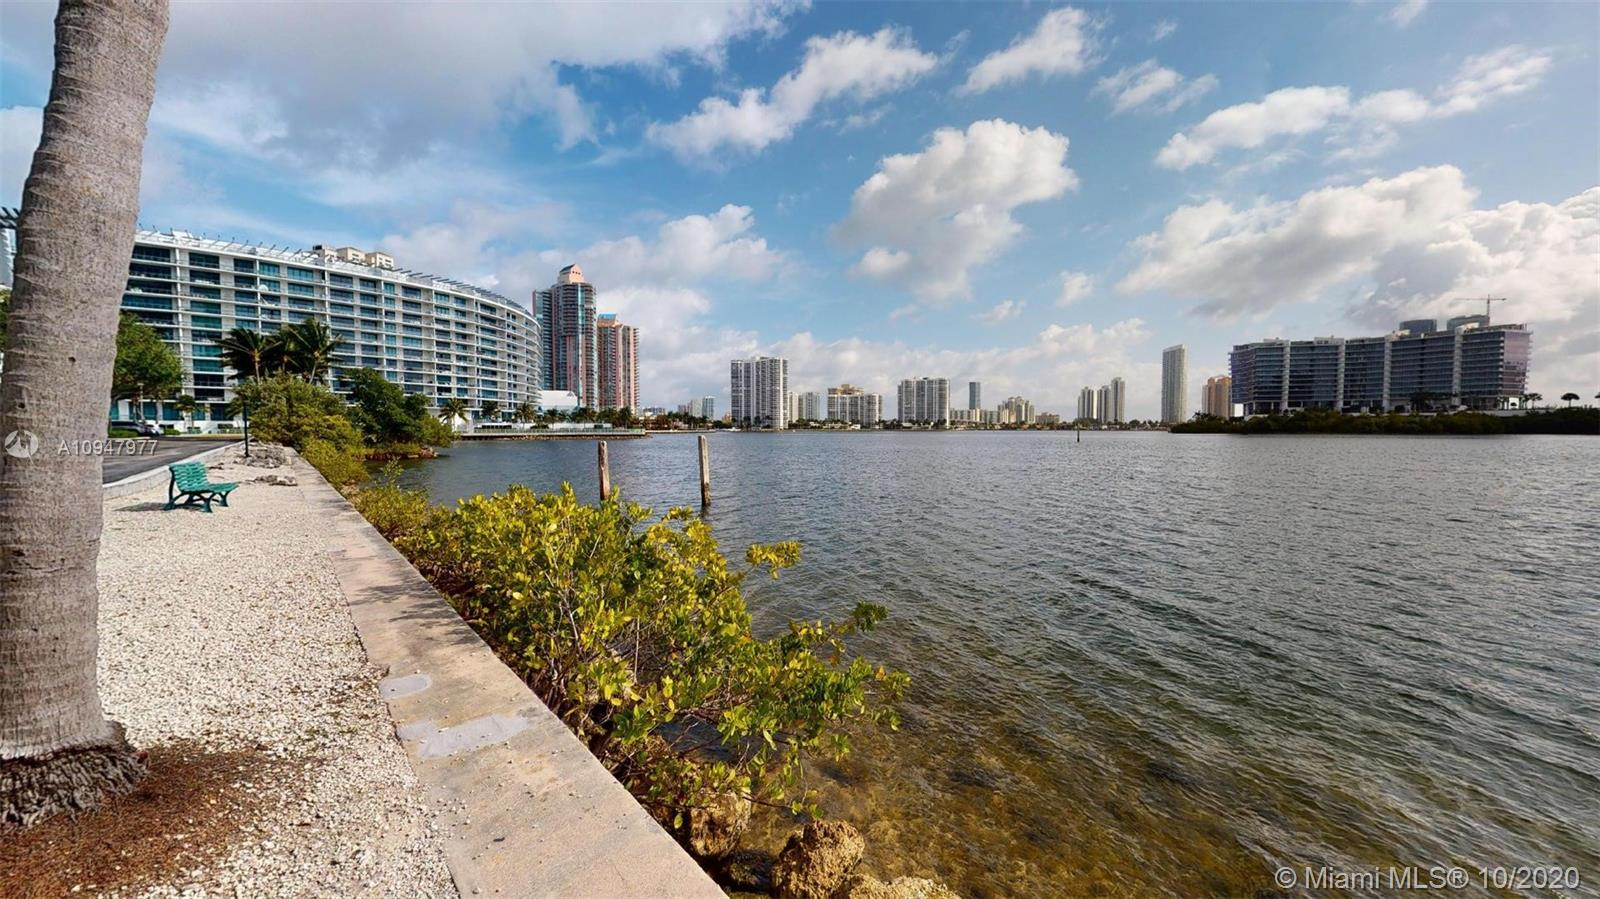 3215 NE 184th St # 14103, Aventura, Florida 33160, 3 Bedrooms Bedrooms, ,2 BathroomsBathrooms,Residential,For Sale,3215 NE 184th St # 14103,A10947977